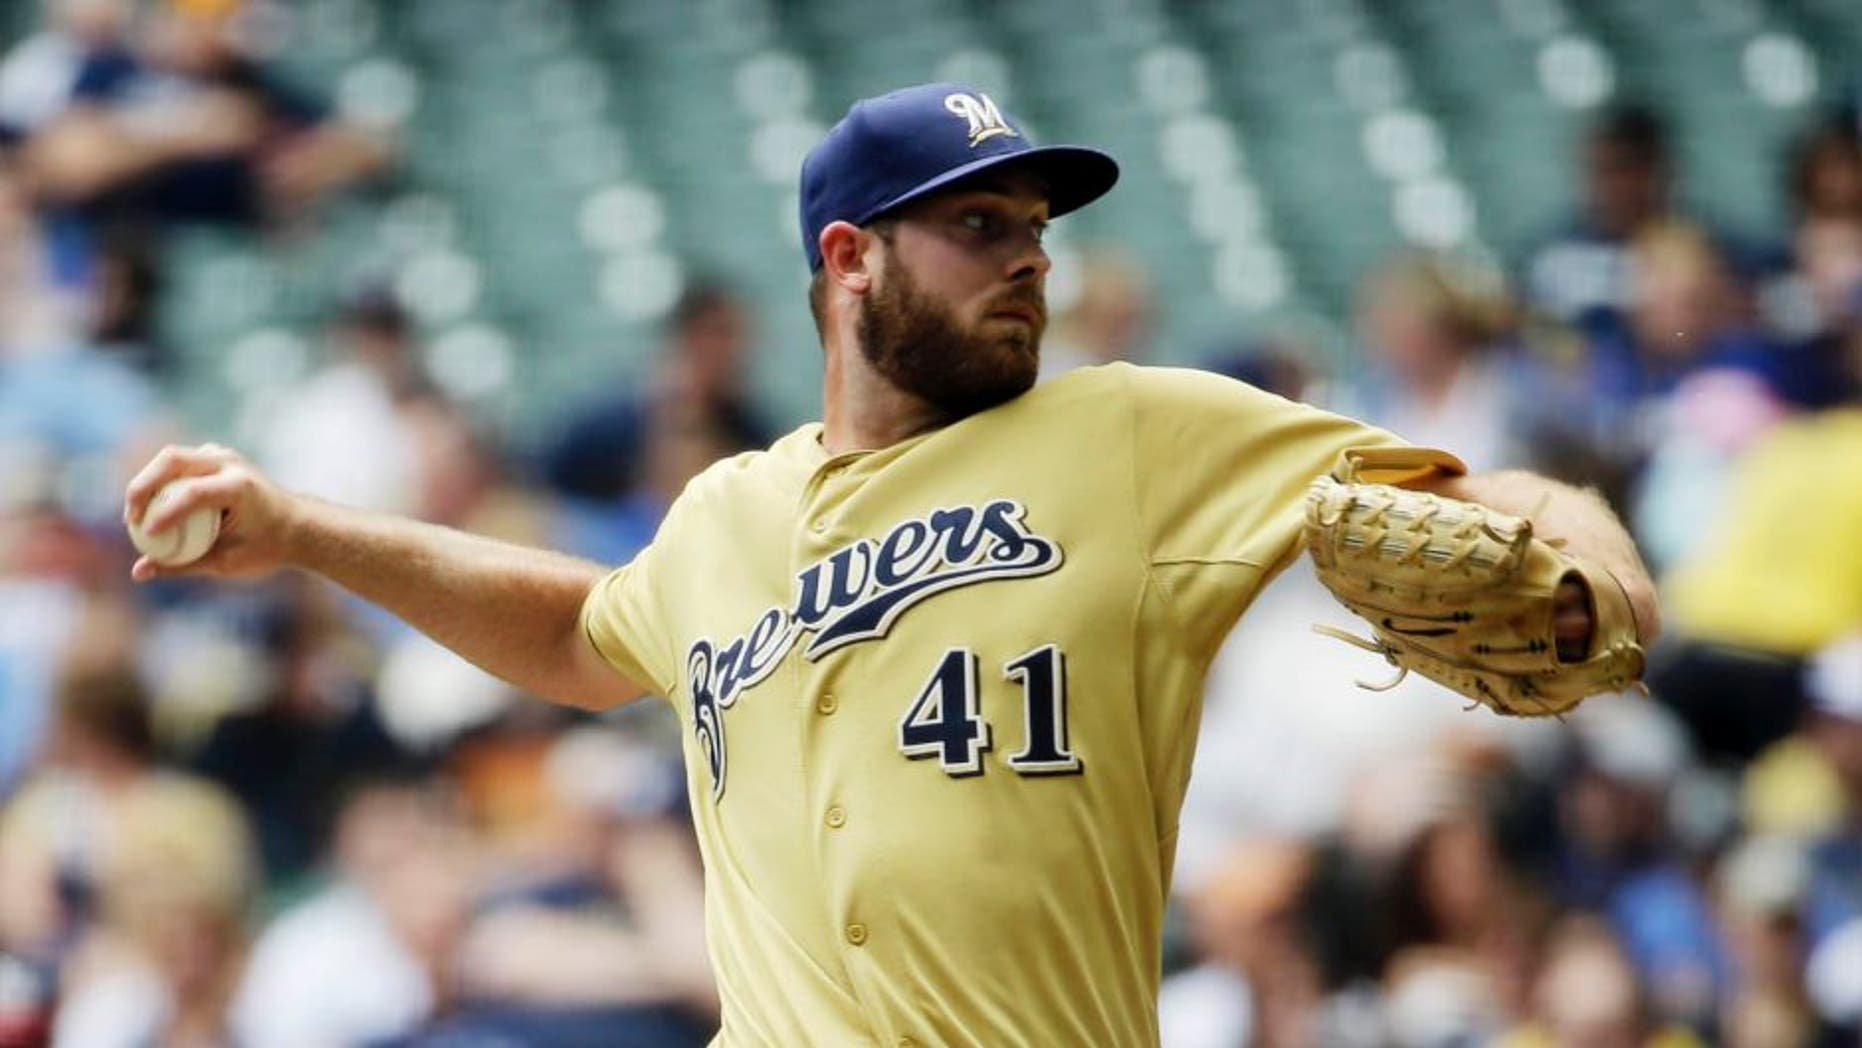 Milwaukee Brewers starting pitcher Taylor Jungmann throws during the first inning against the Washington Nationals, Sunday, June 14, 2015, in Milwaukee.